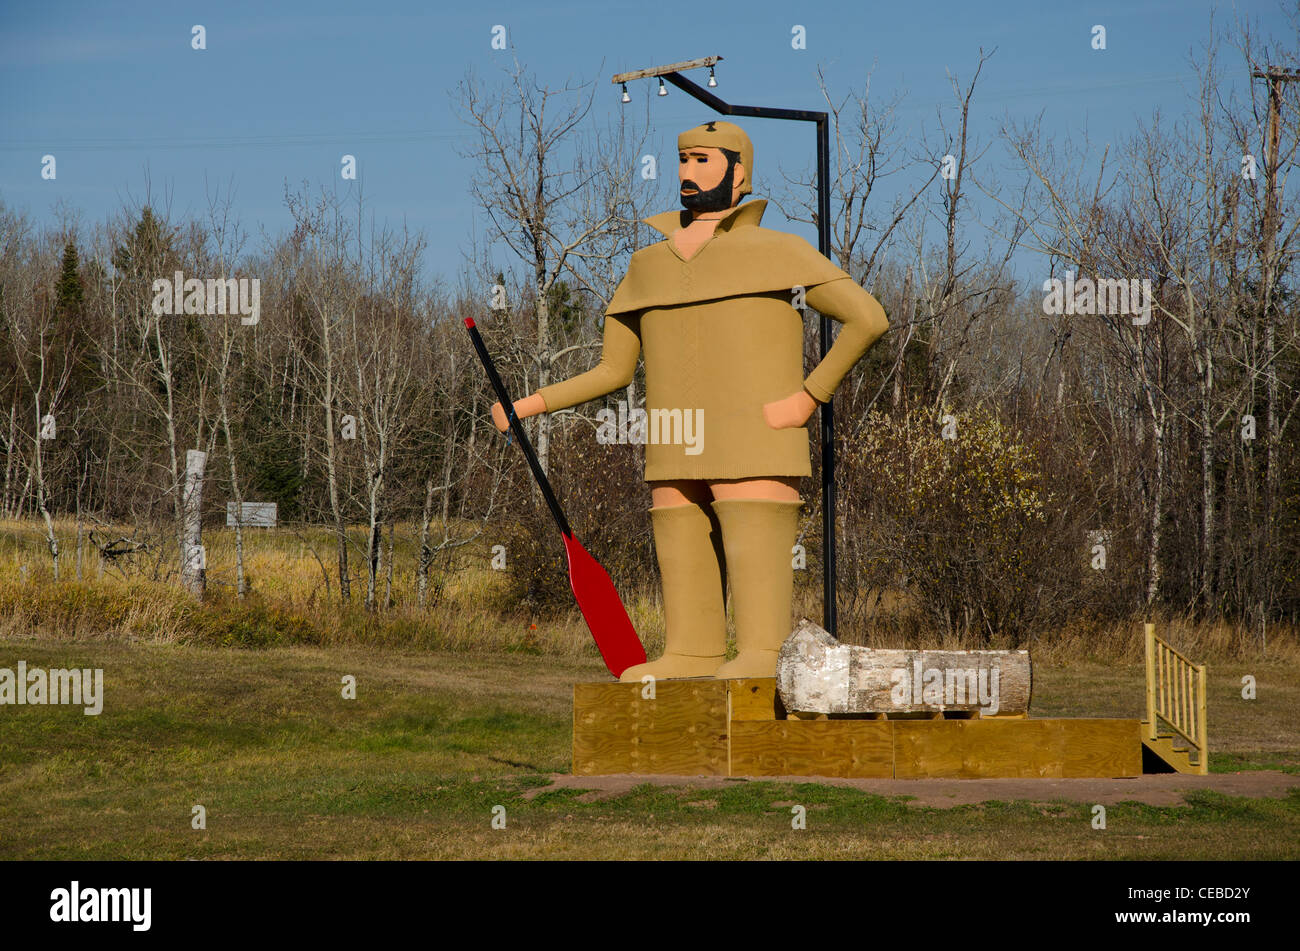 Statue of Pierre the Voyageur in Two Harbors, Minnesota in the North Shore area - Stock Image